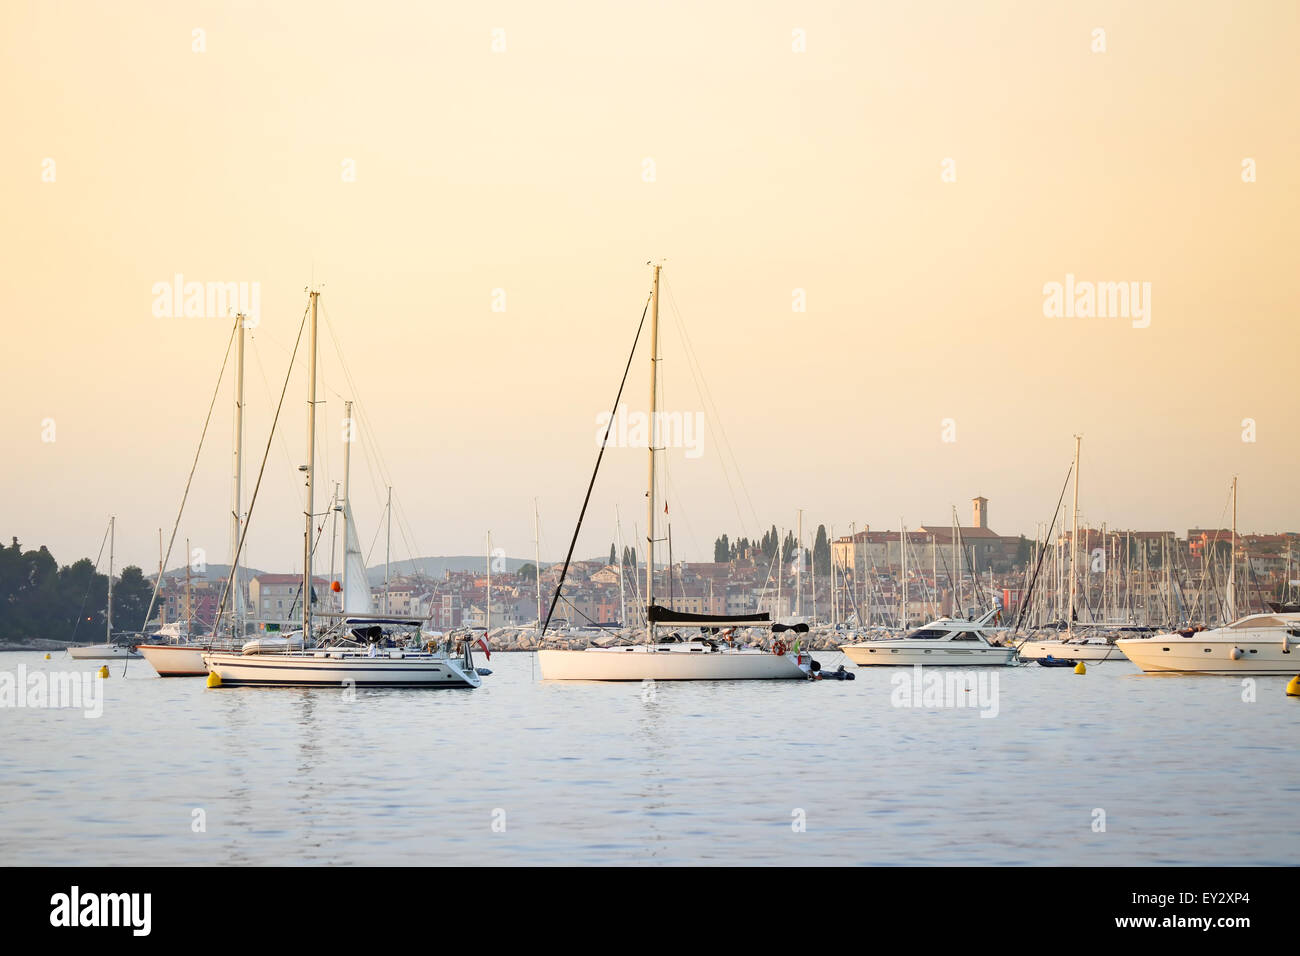 Sailboats anchored in the Adriatic sea near the coast at sunset in Rovinj, Croatia. - Stock Image